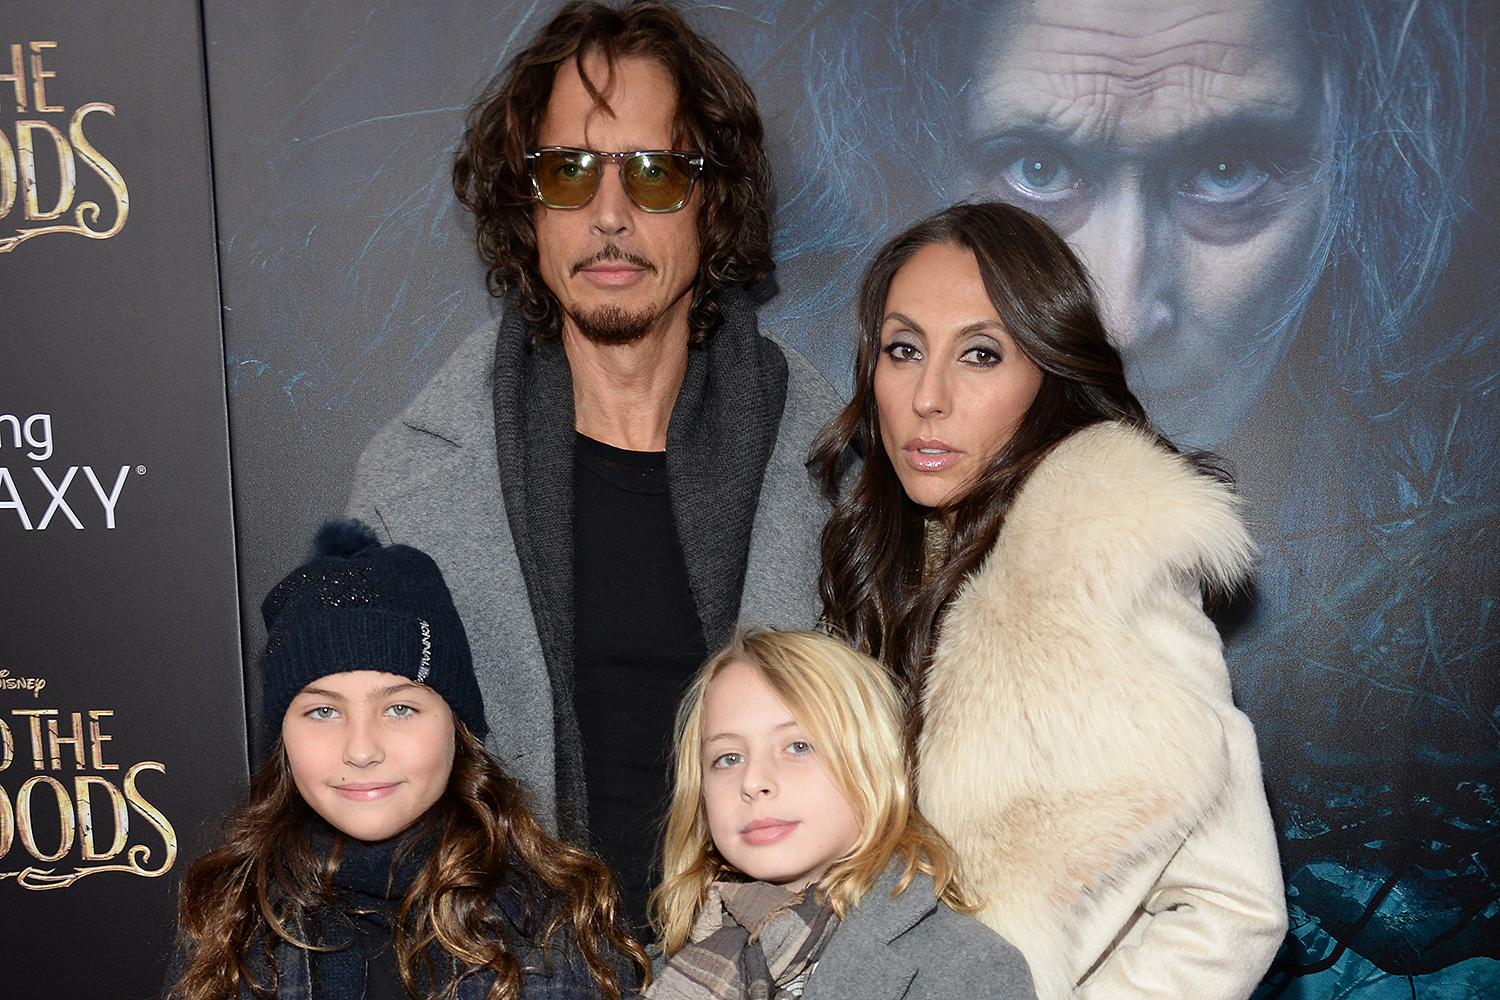 Chris Cornell and Vicky Karayiannis family